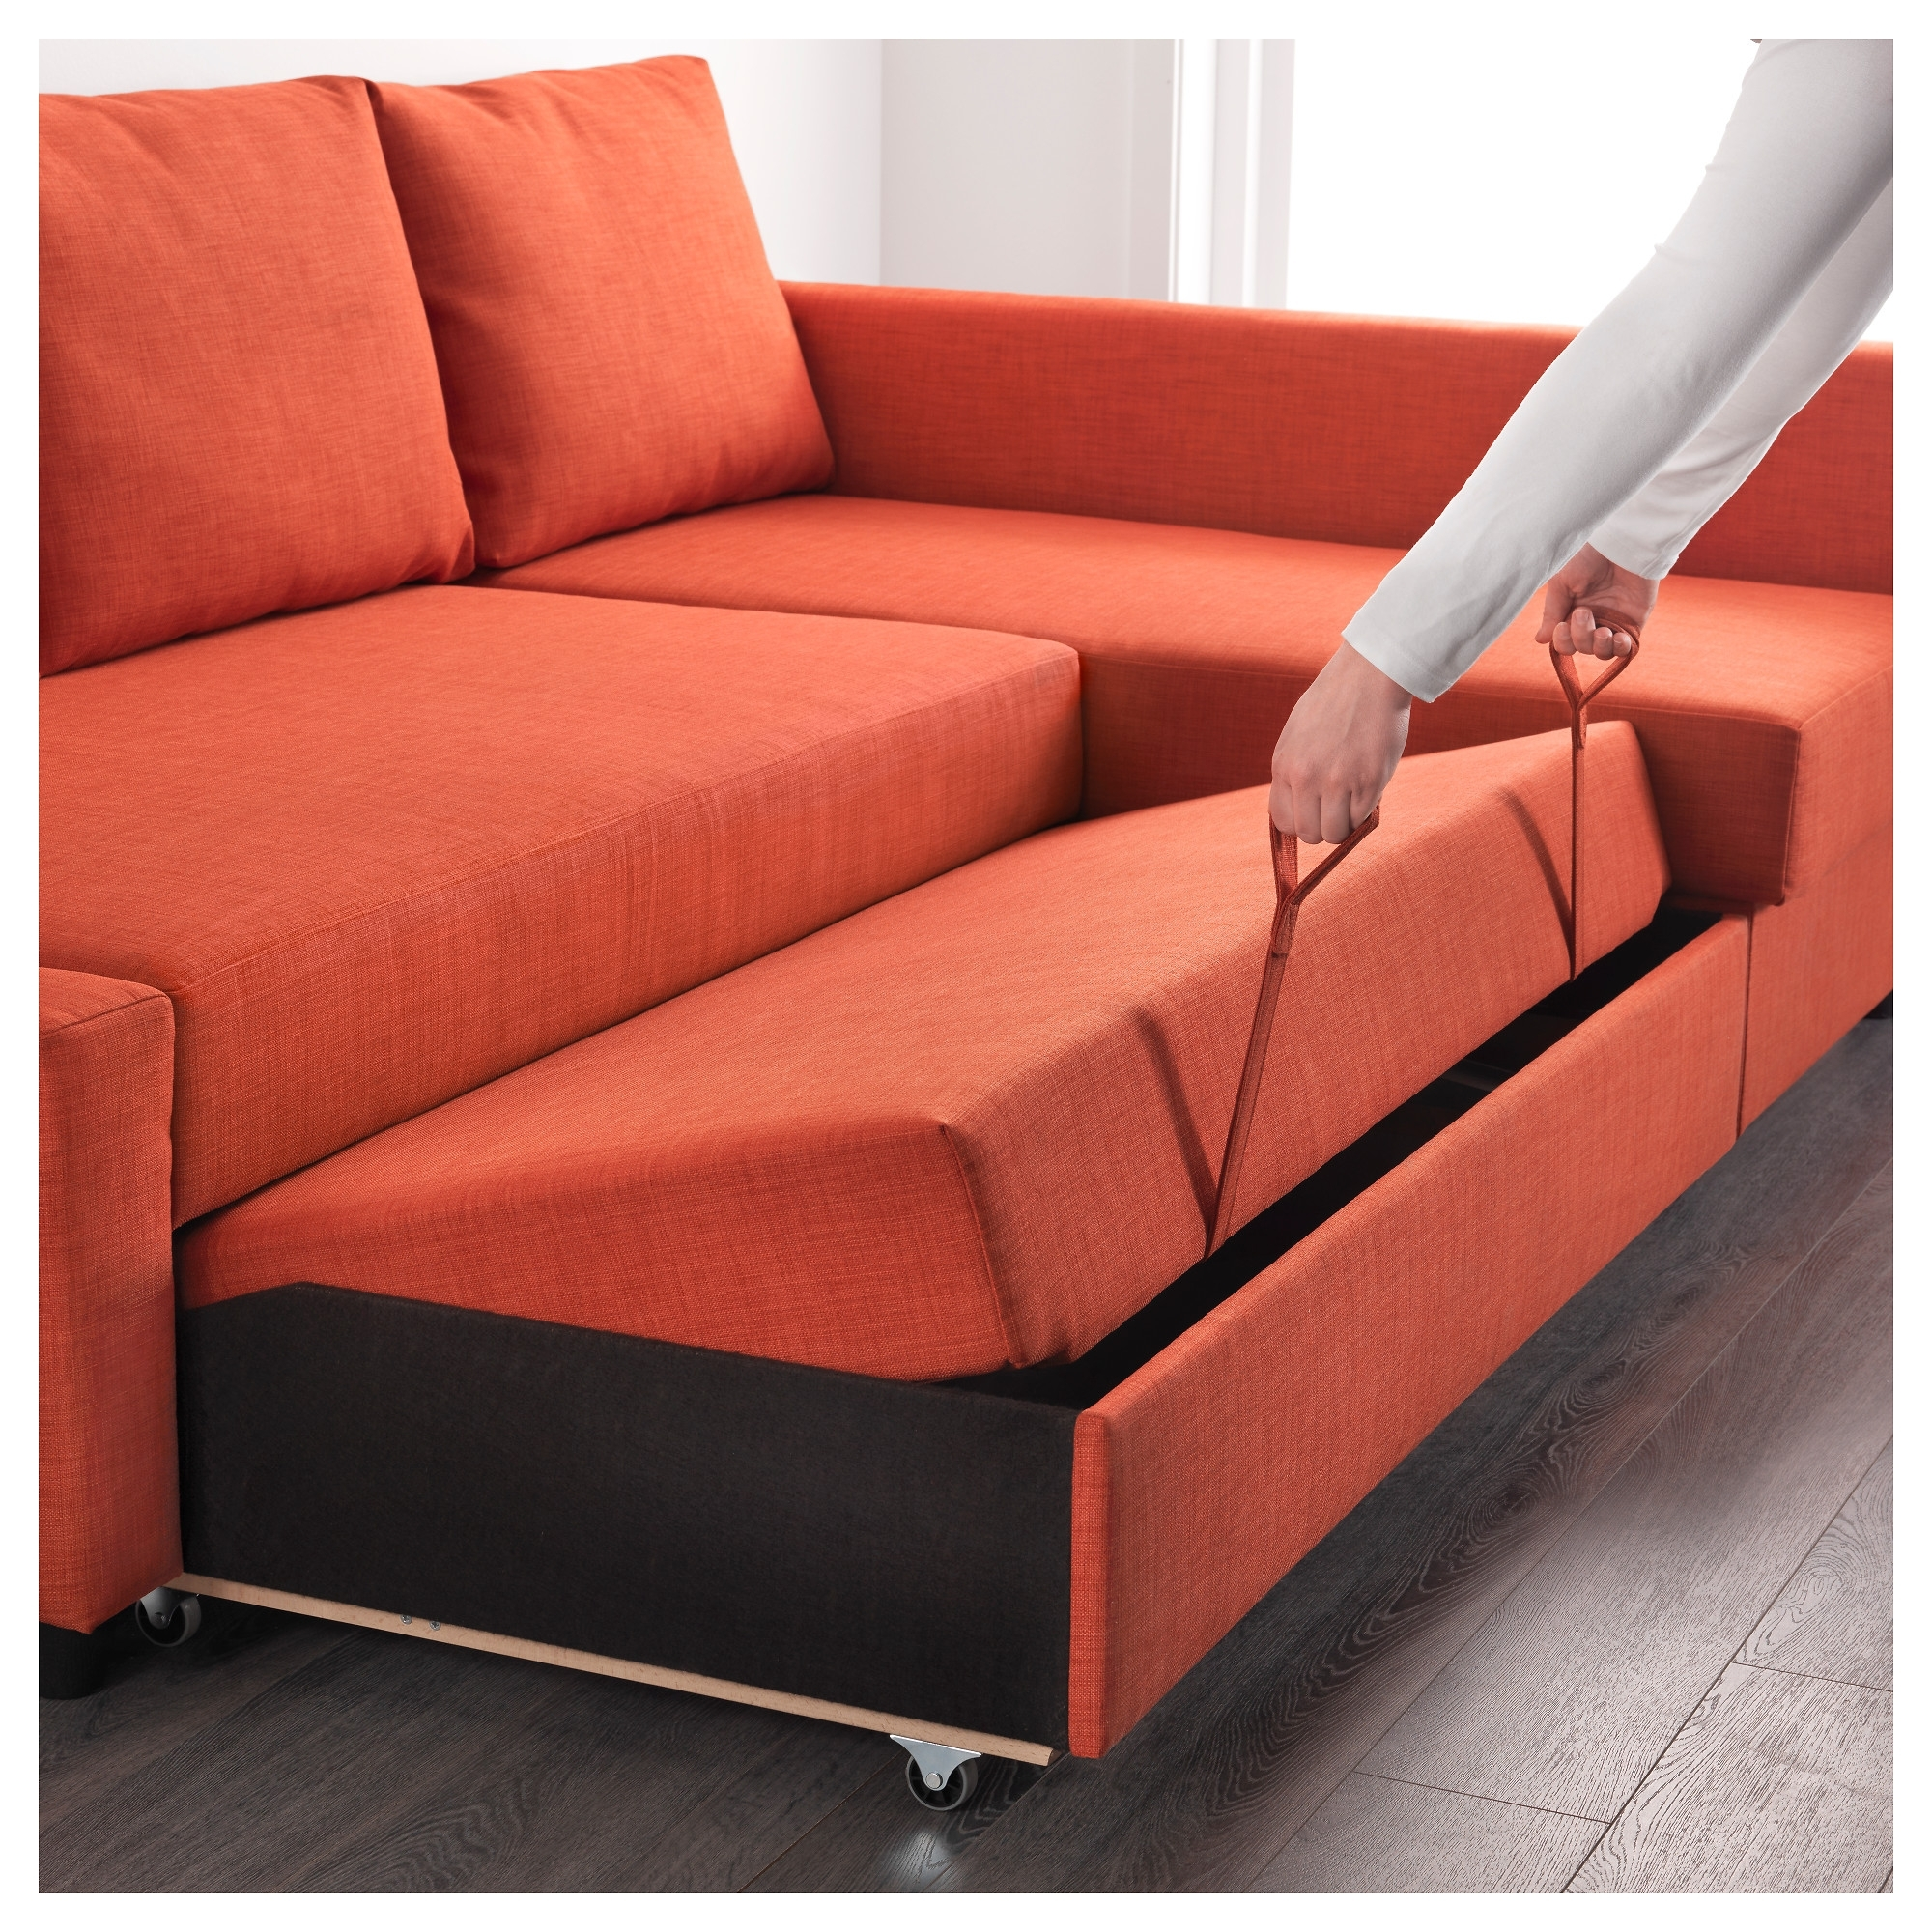 Ikea Corner Sofas With Storage Regarding Current Friheten Corner Sofa Bed With Storage Skiftebo Dark Orange – Ikea (View 5 of 20)